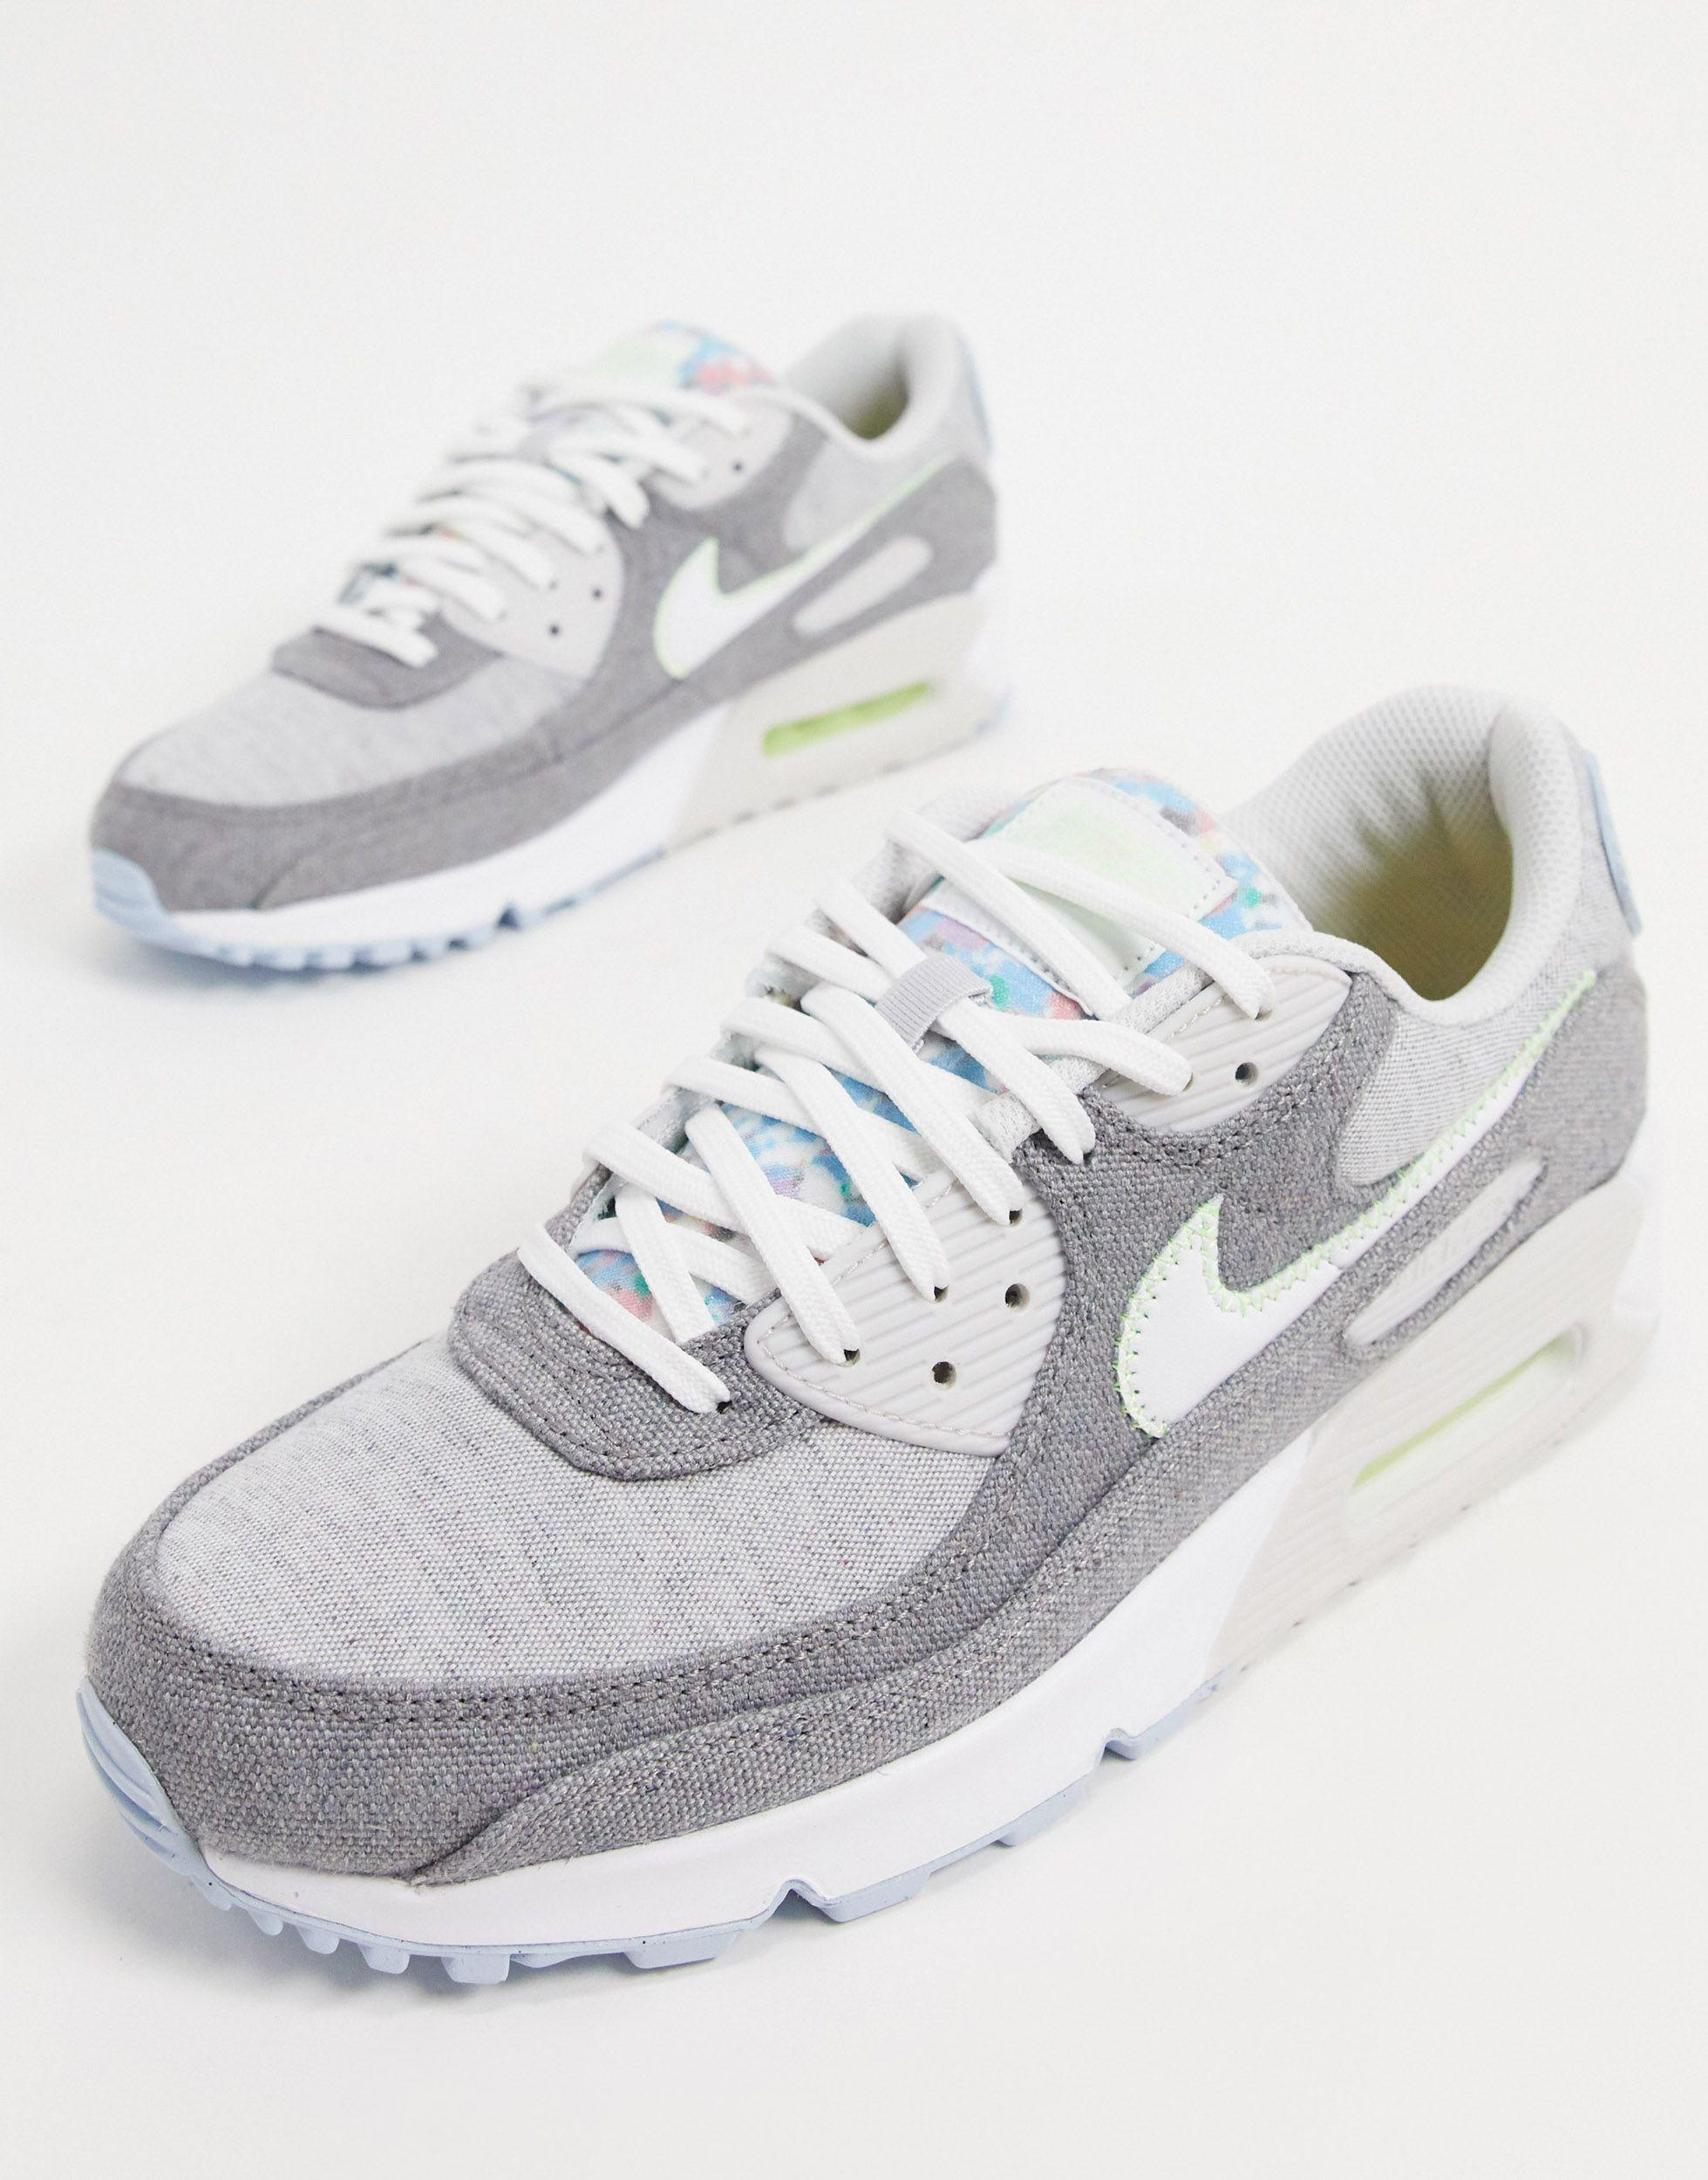 Nike Air Max 90 Recycled Canvas Sneakers in Gray for Men - Lyst